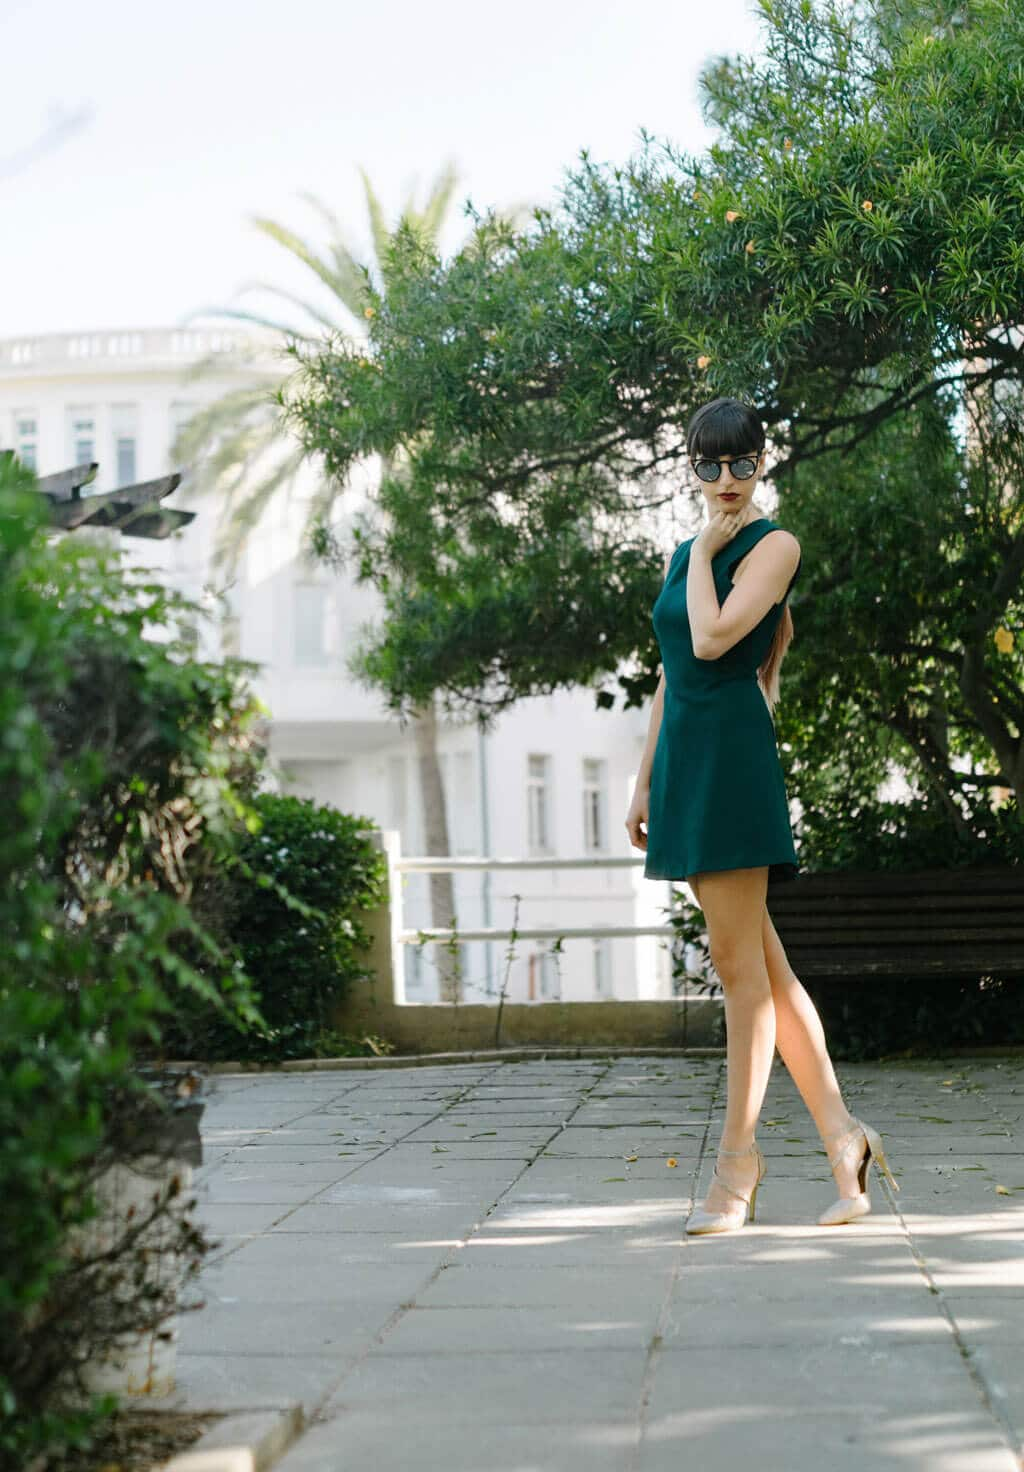 Evergreen - Classic look for the working girl